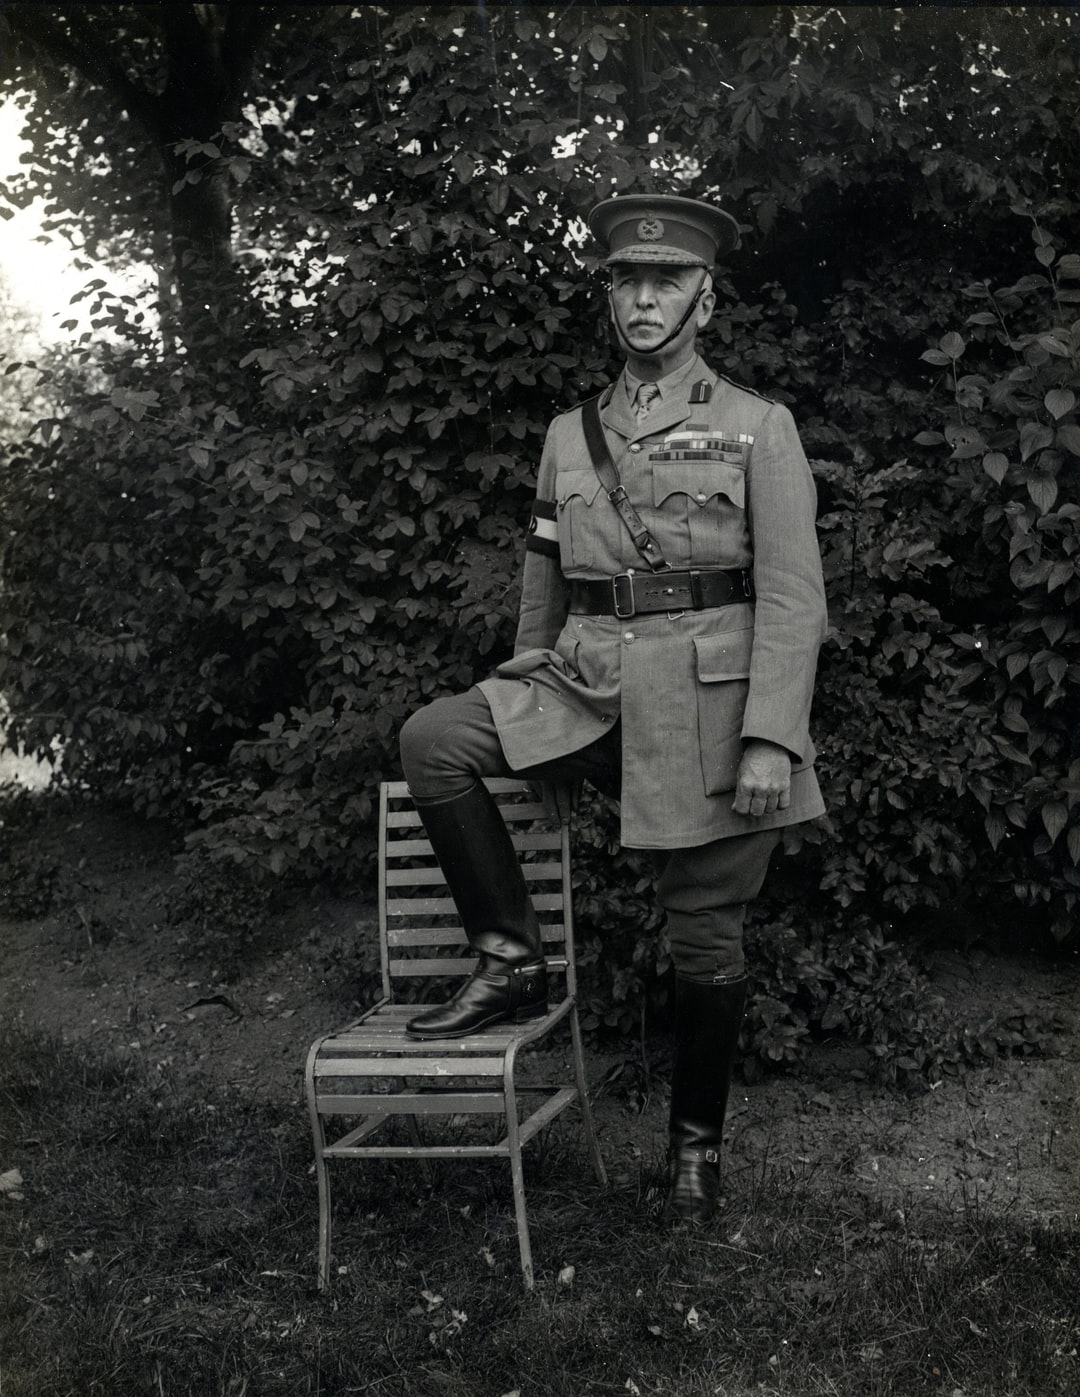 1914. General Sir James Willcocks photographed at his headquarters. Photographer: H. D. Girdwood.